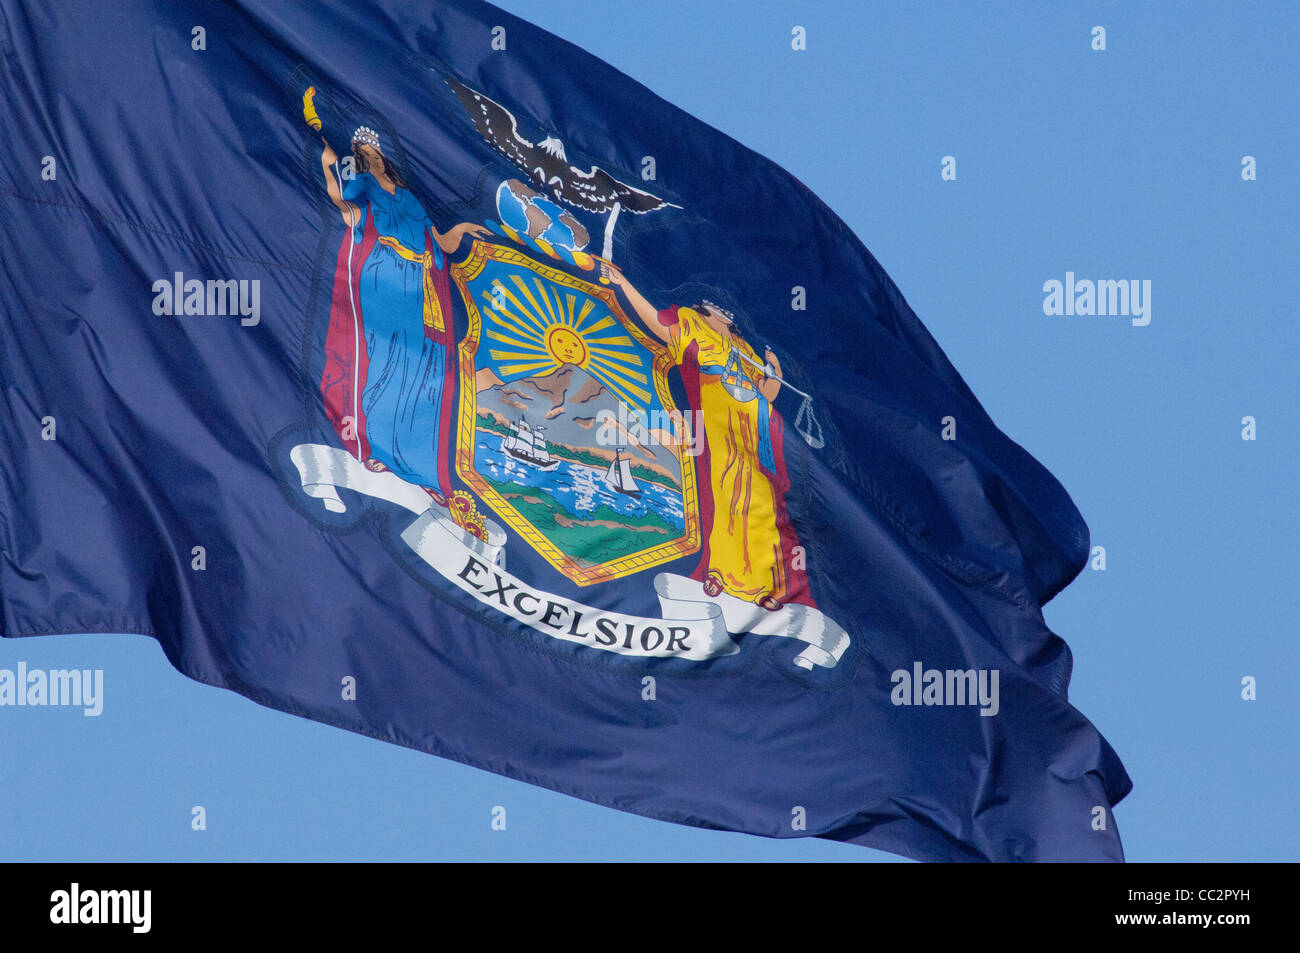 New York state, Erie Canal on the Mohawk river between Little Falls & Sylvan Beach. New York state flag with - Stock Image